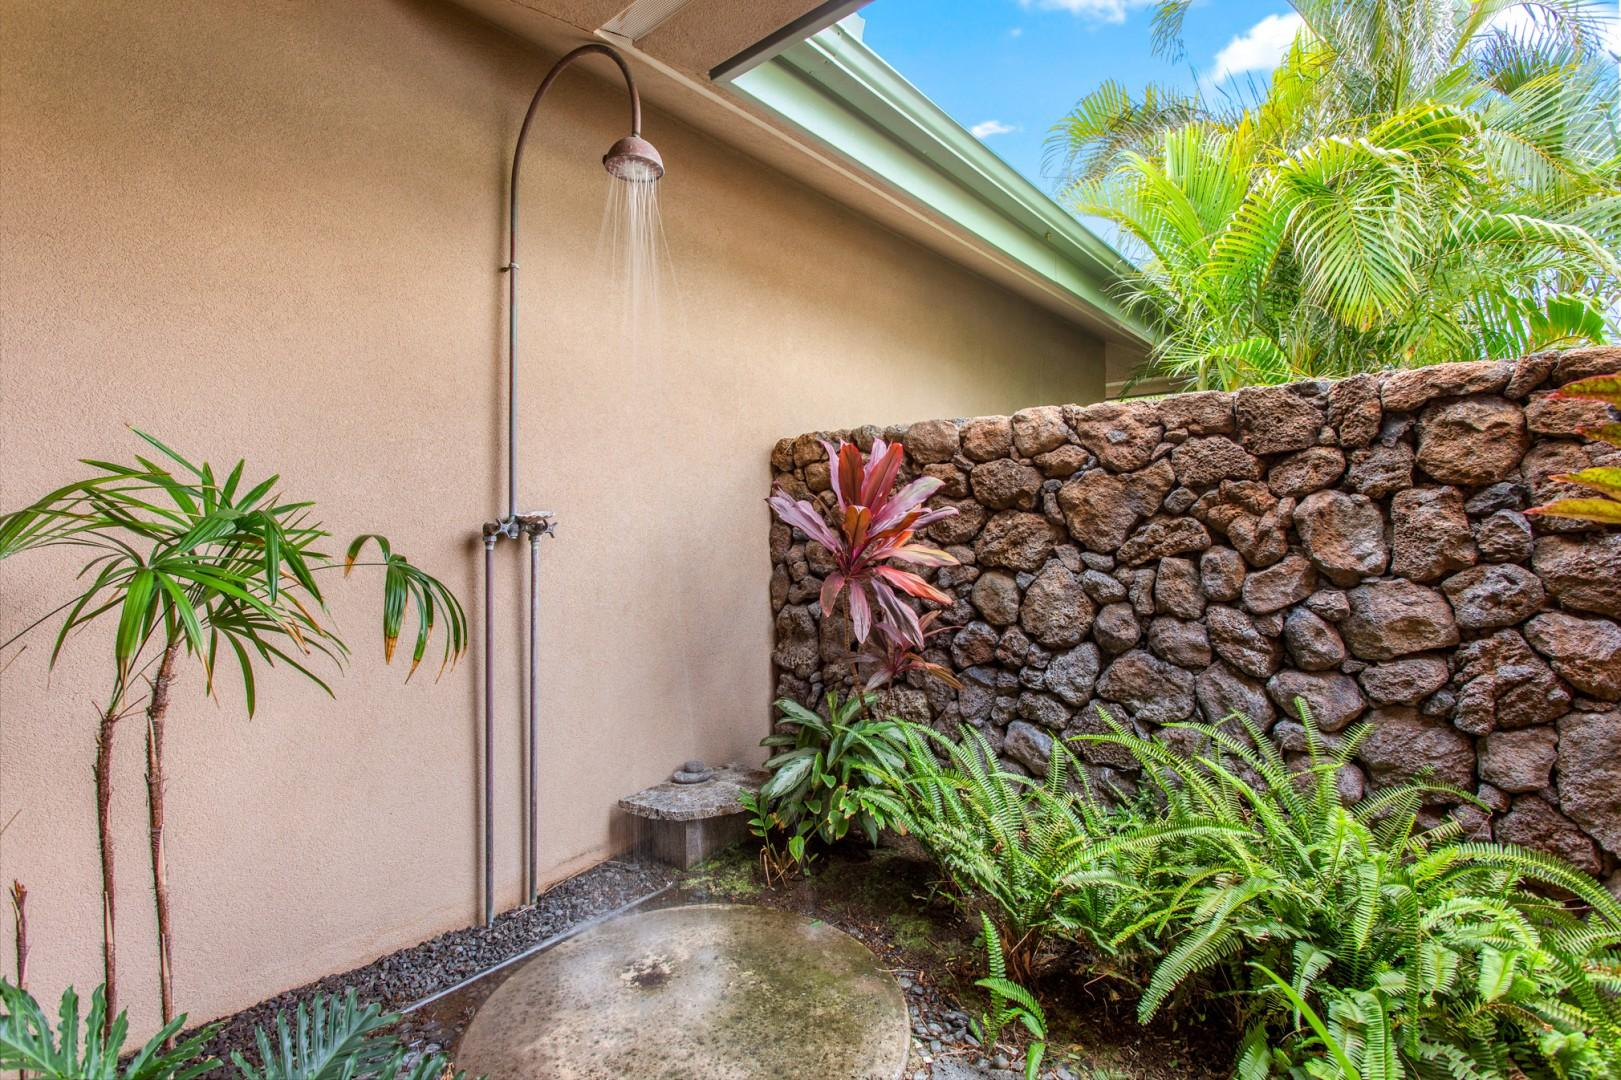 Closer view of the outdoor shower garden with tropical landscaping.